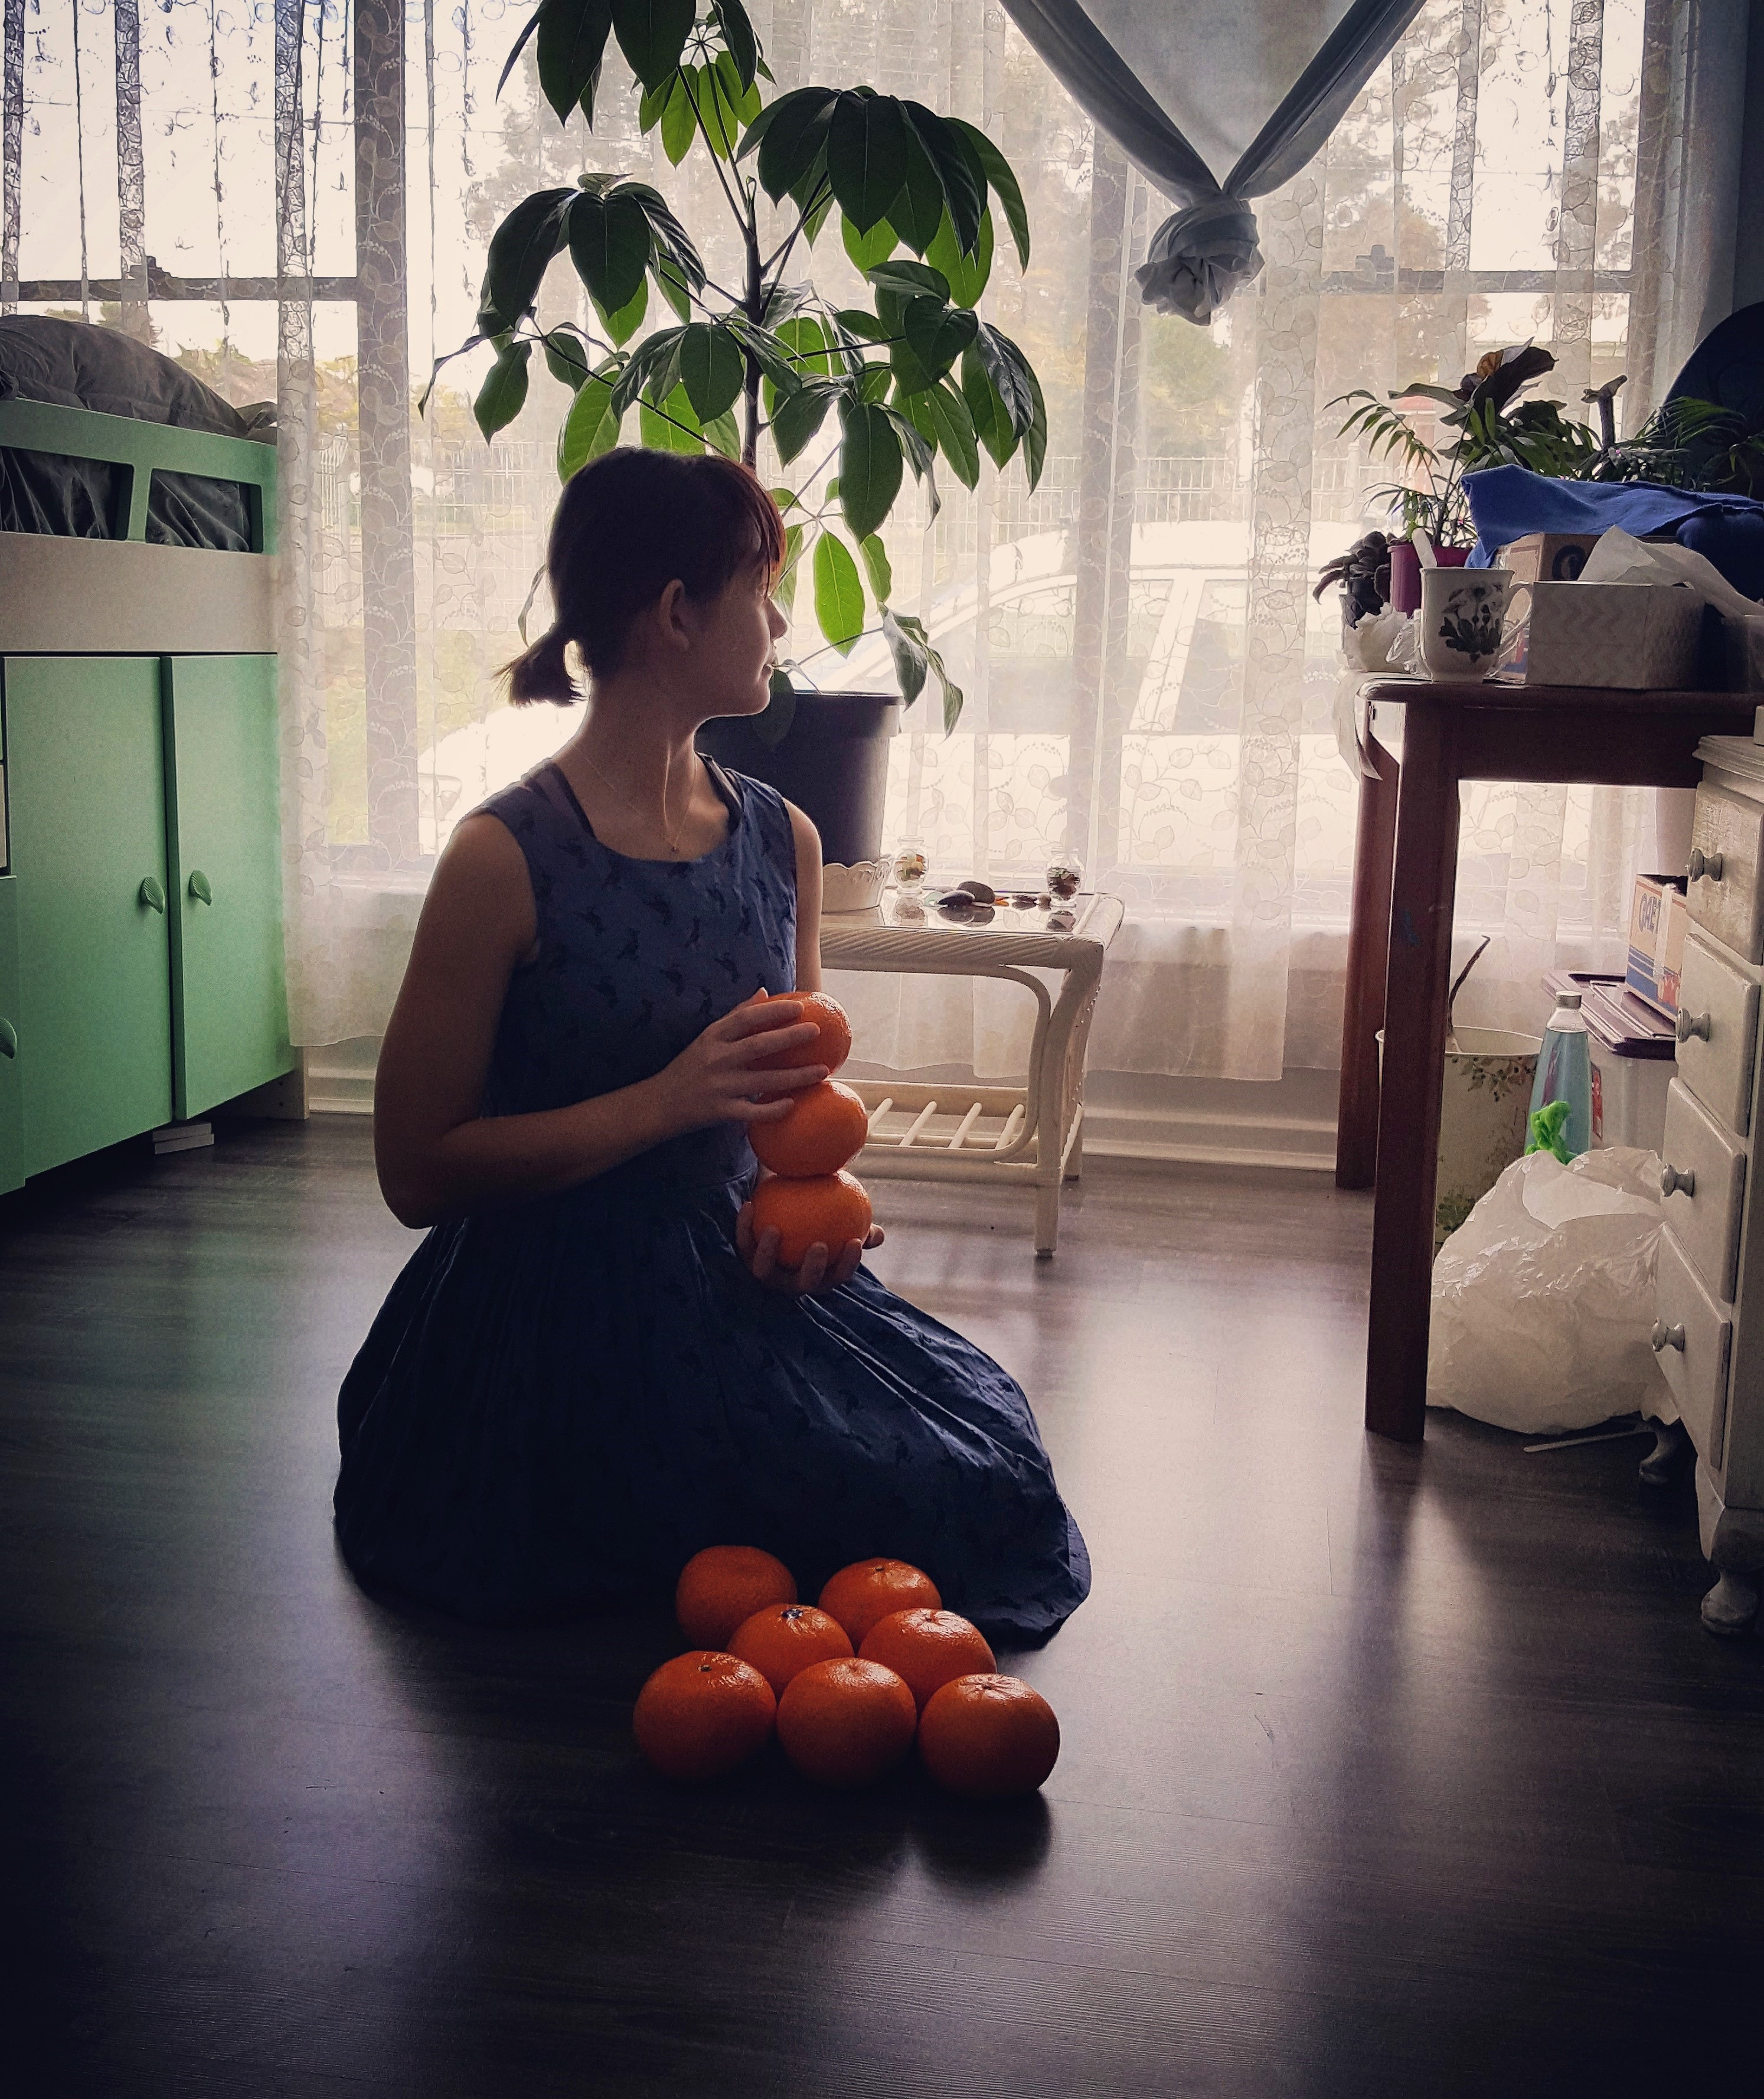 Girl with Oranges (Ecosystems of Domestic Suburbia Series)